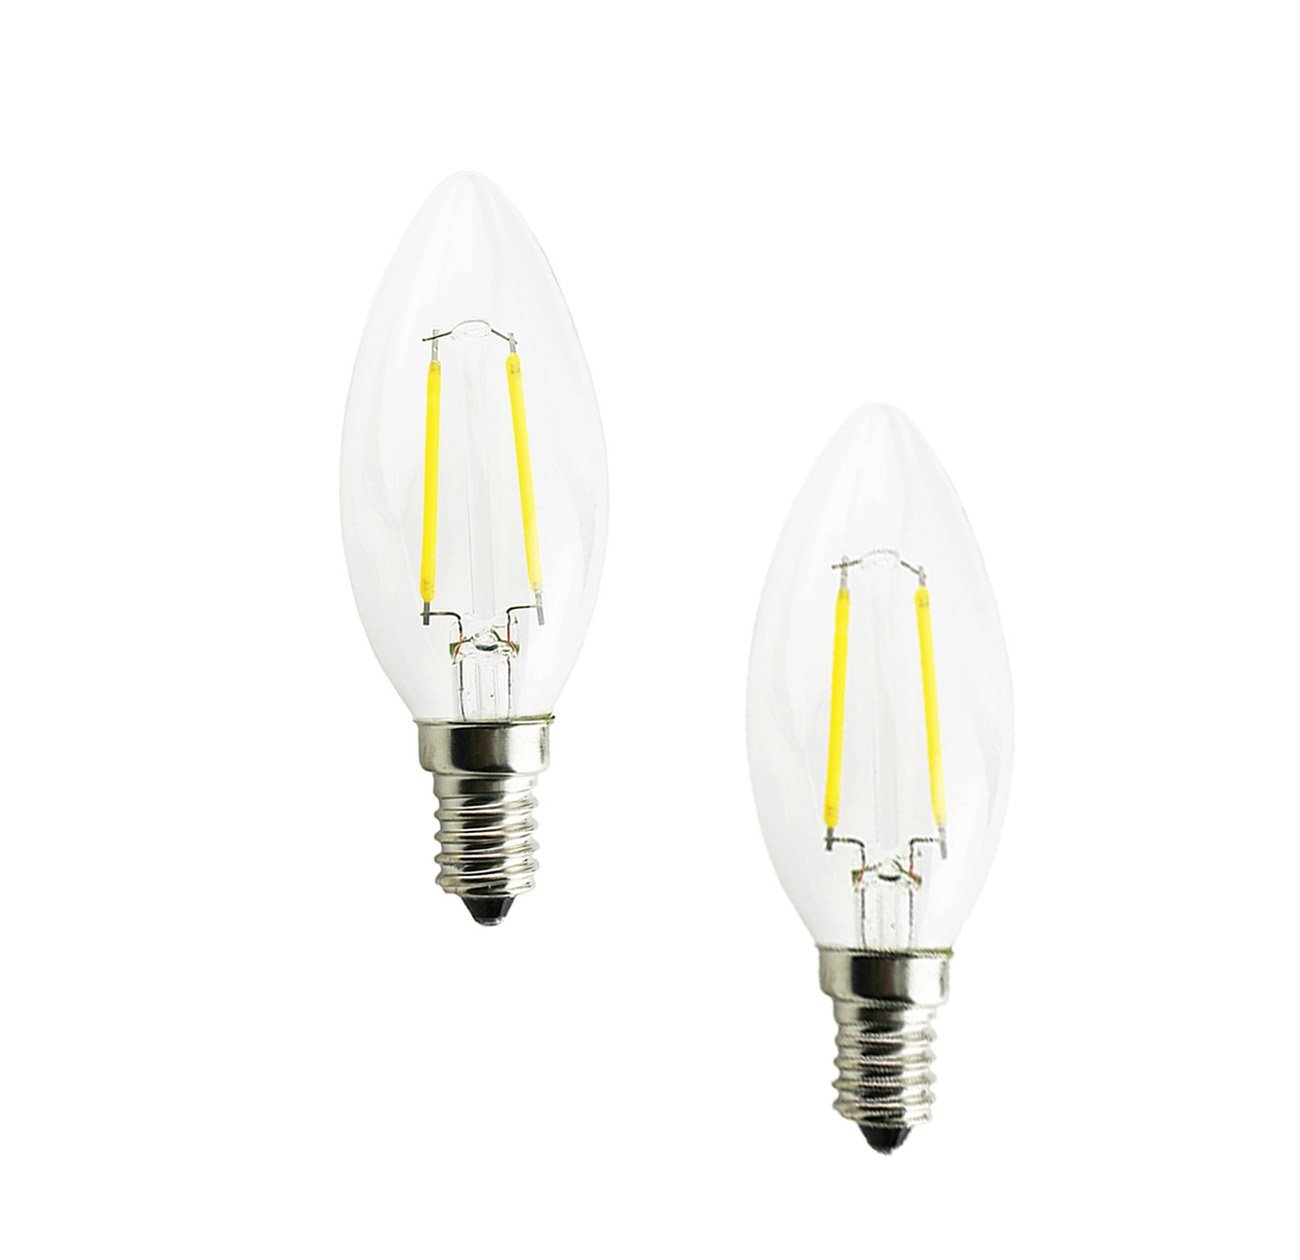 Lamsky 2-Watt E14 European Screw Base LED Filament Candle Shape Light Bulb Clear Glass C35 Shape Bullet Top,Warm White 2700K 15-Watt Incandescent Equivalent, No-Dimmable (2-Pack)